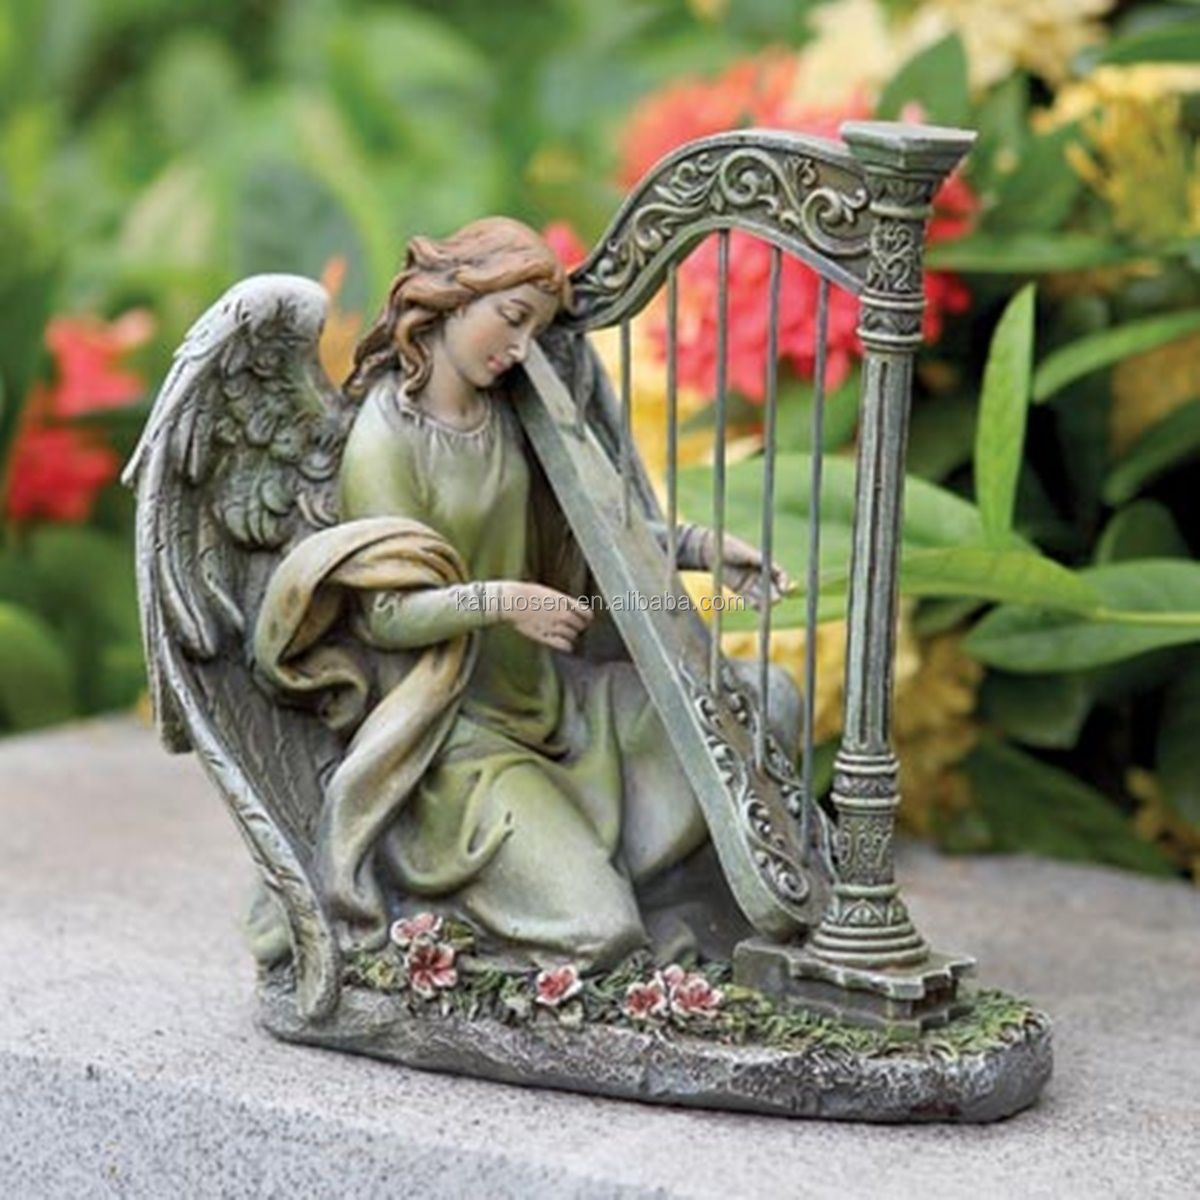 Home Decoration Statues Angel Playing Harp Garden Statue Buy Garden Angel Statue